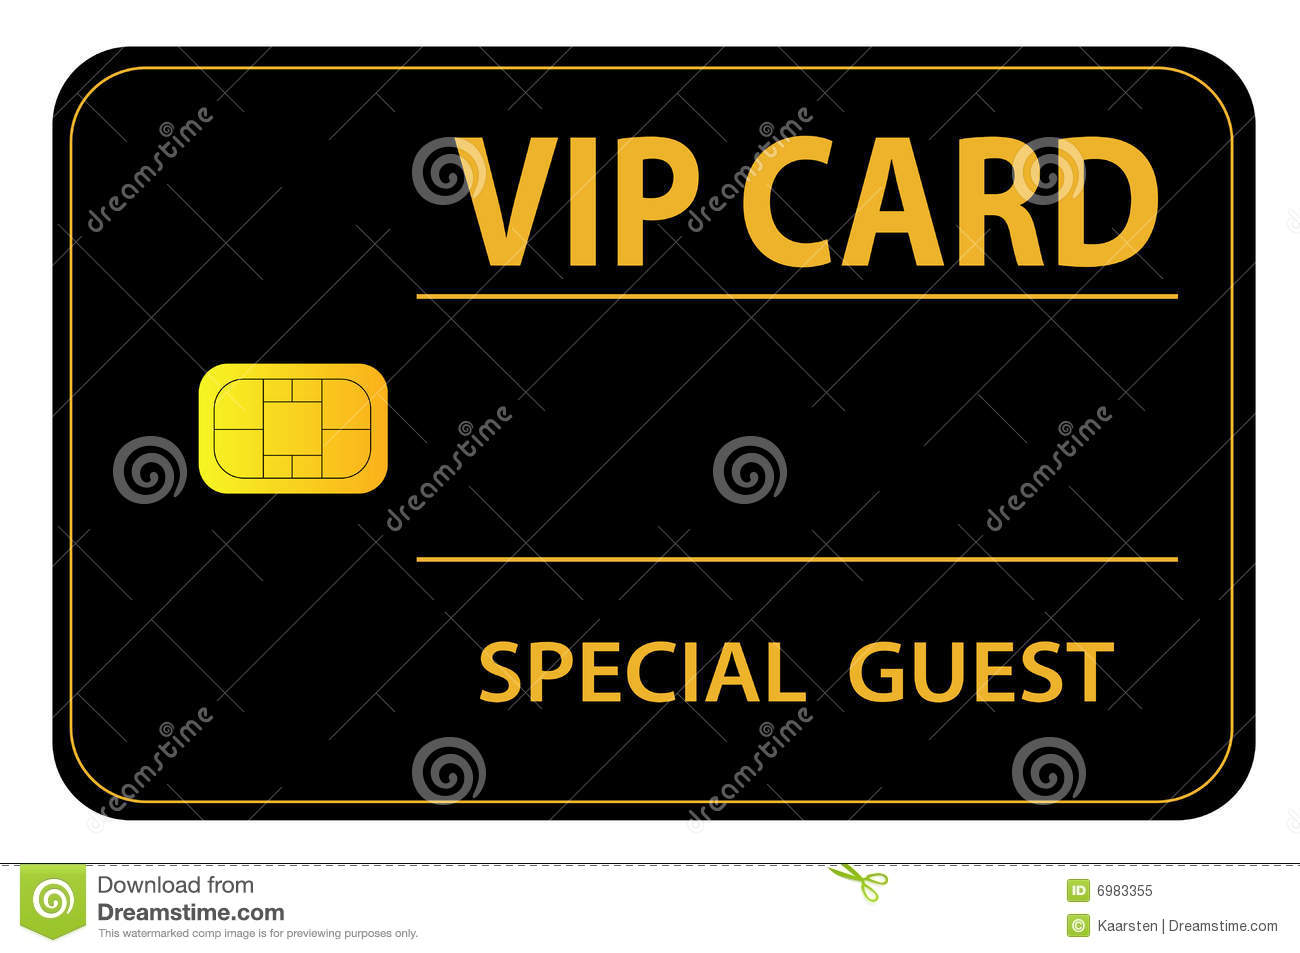 VIP Card Royalty Free Stock Photo - Image: 6983355